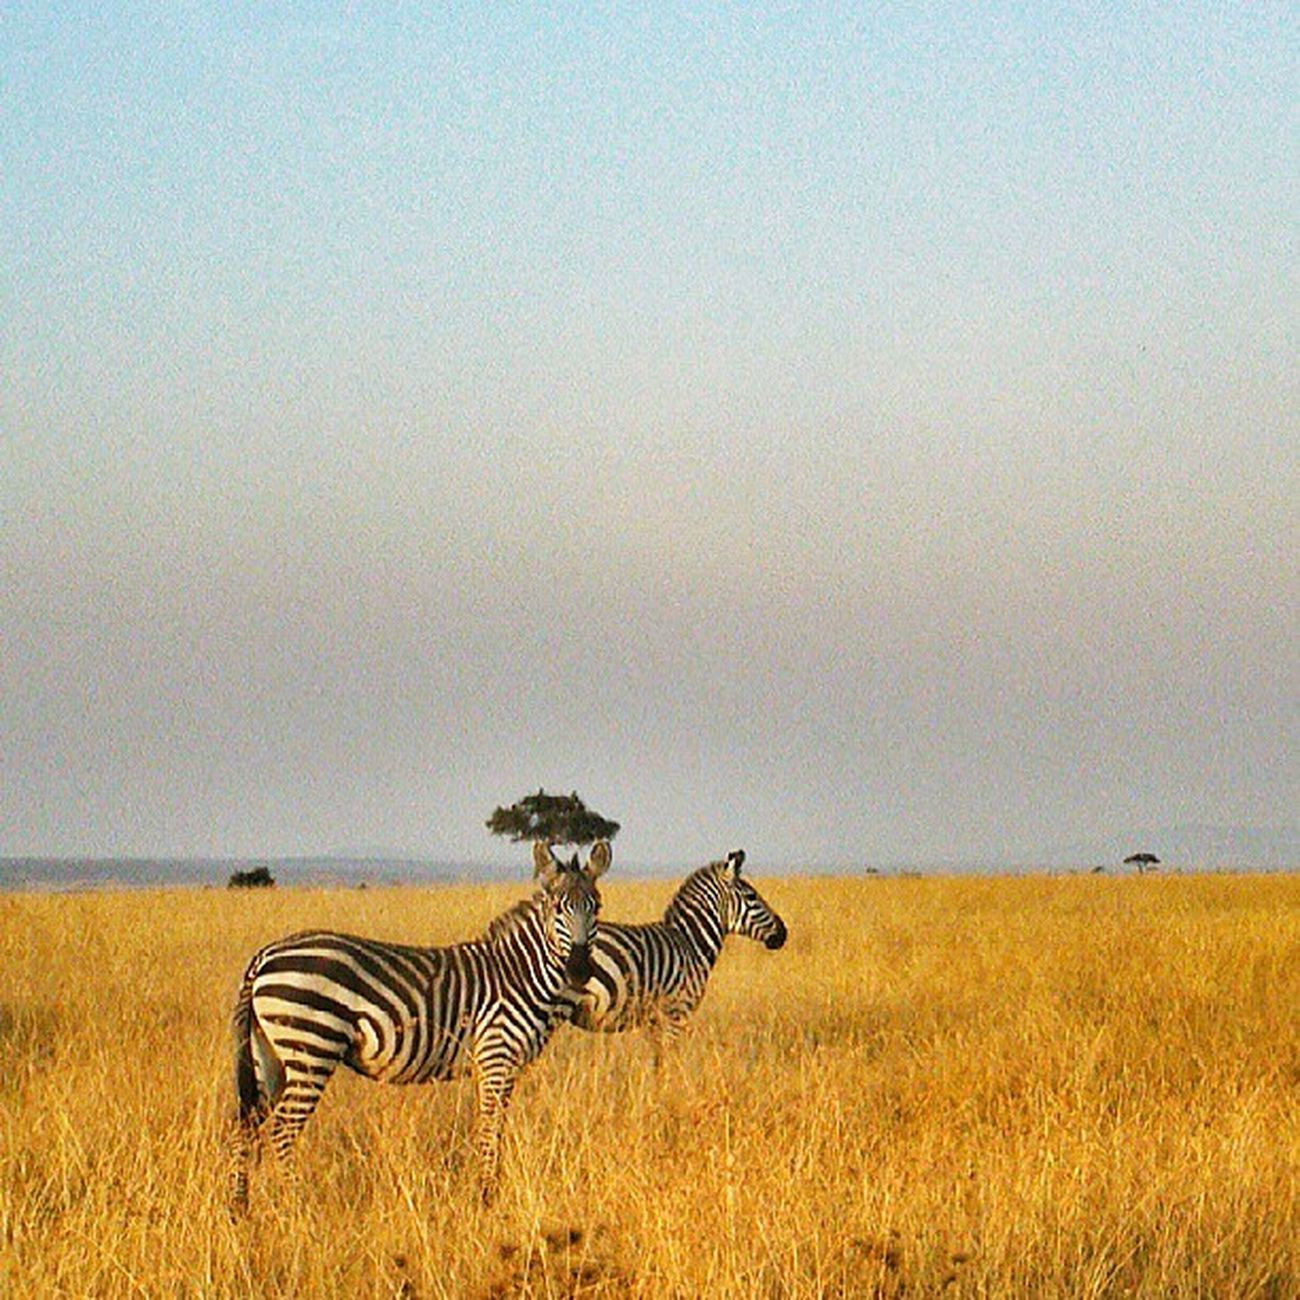 Welcome to the Mara!! Sony_xperia AEP Xperiap MagicalKenya Snapseed Kenya